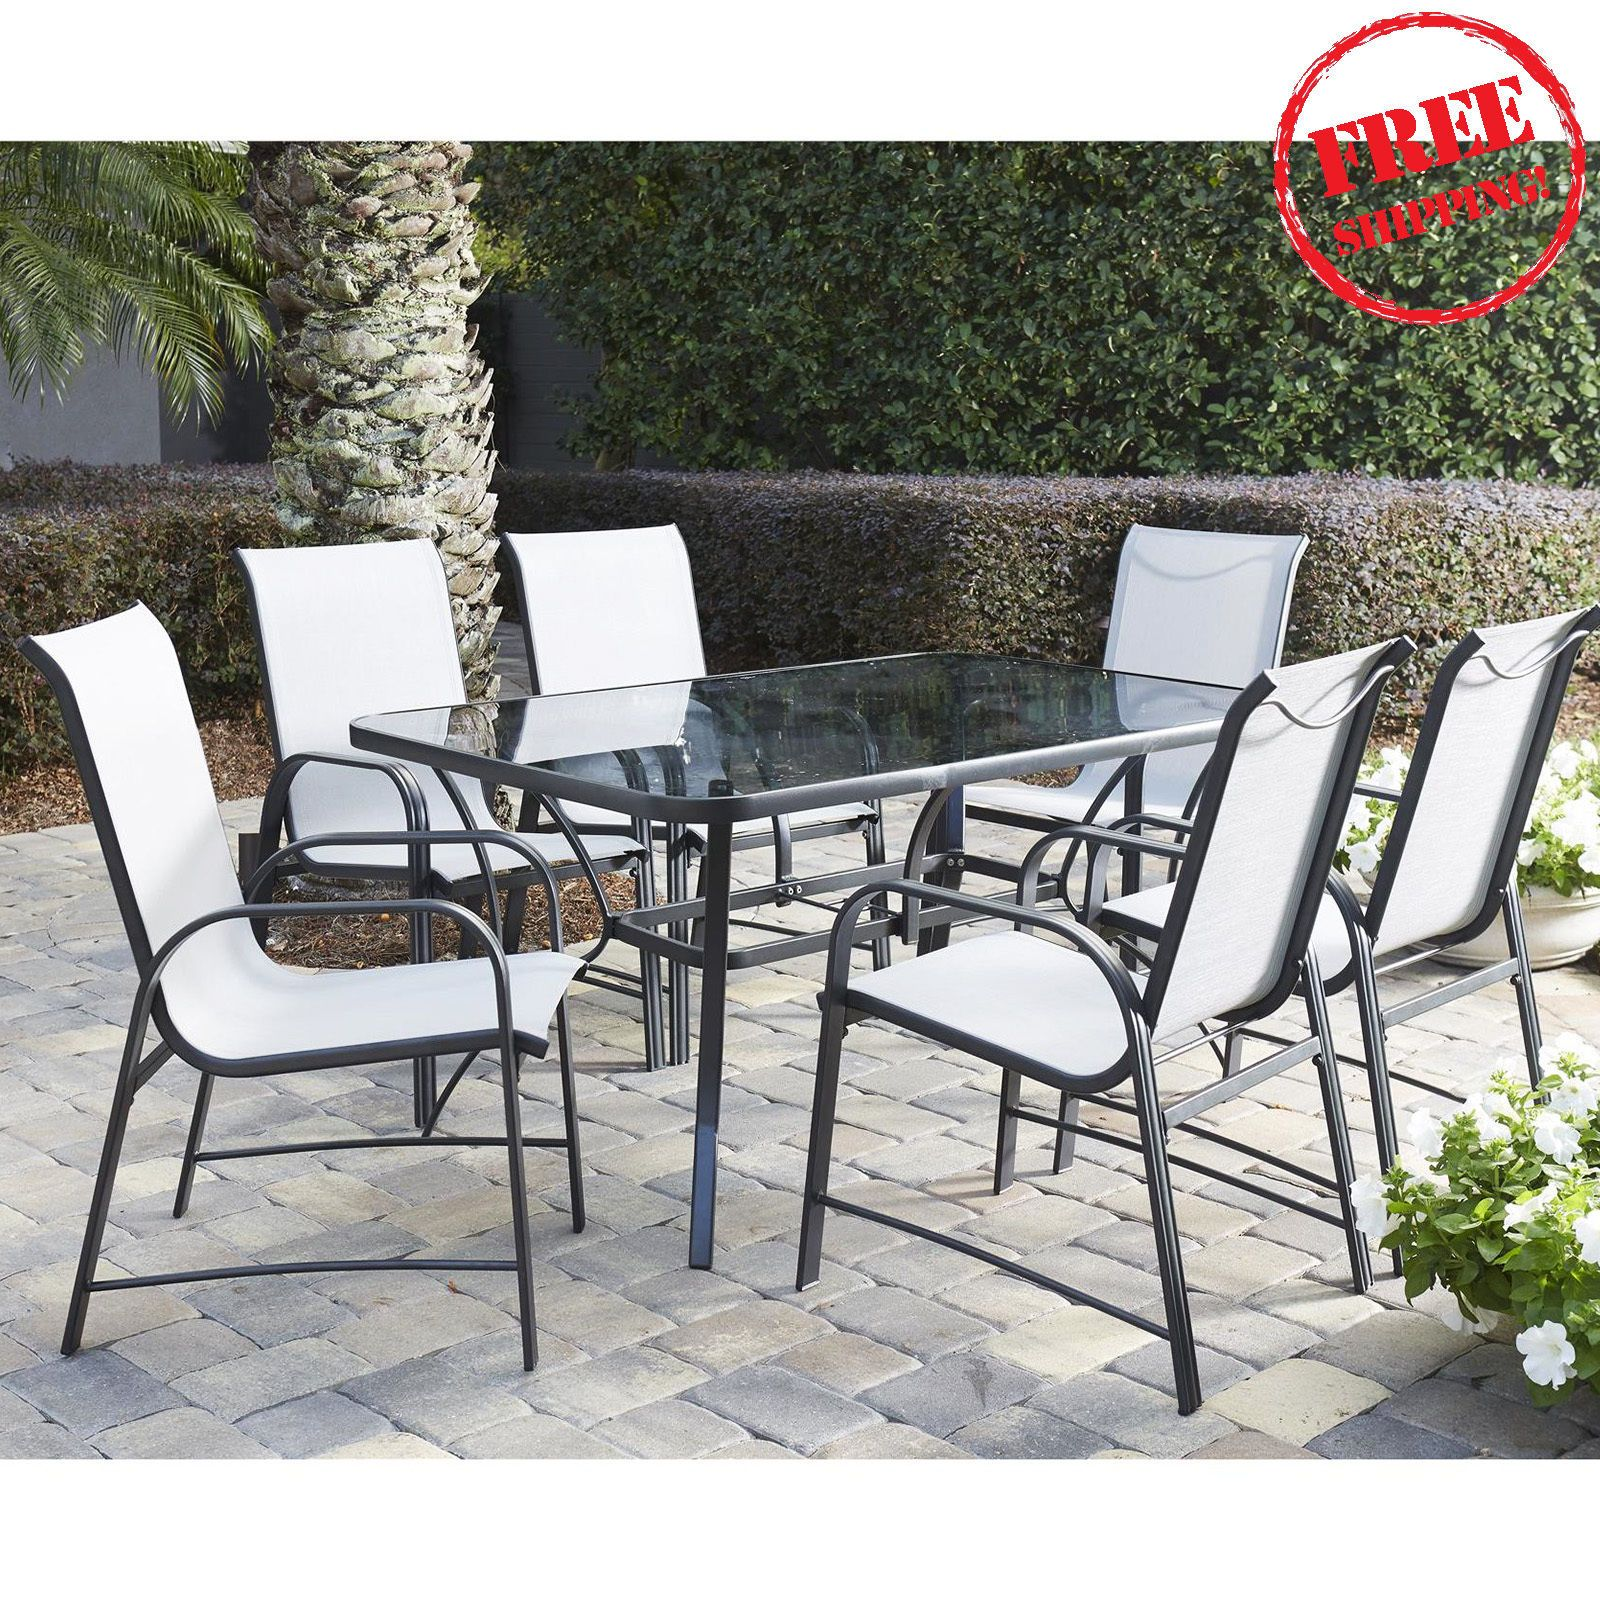 7 Piece Outdoor Dining Set Patio Furniture Table and Chairs Steel